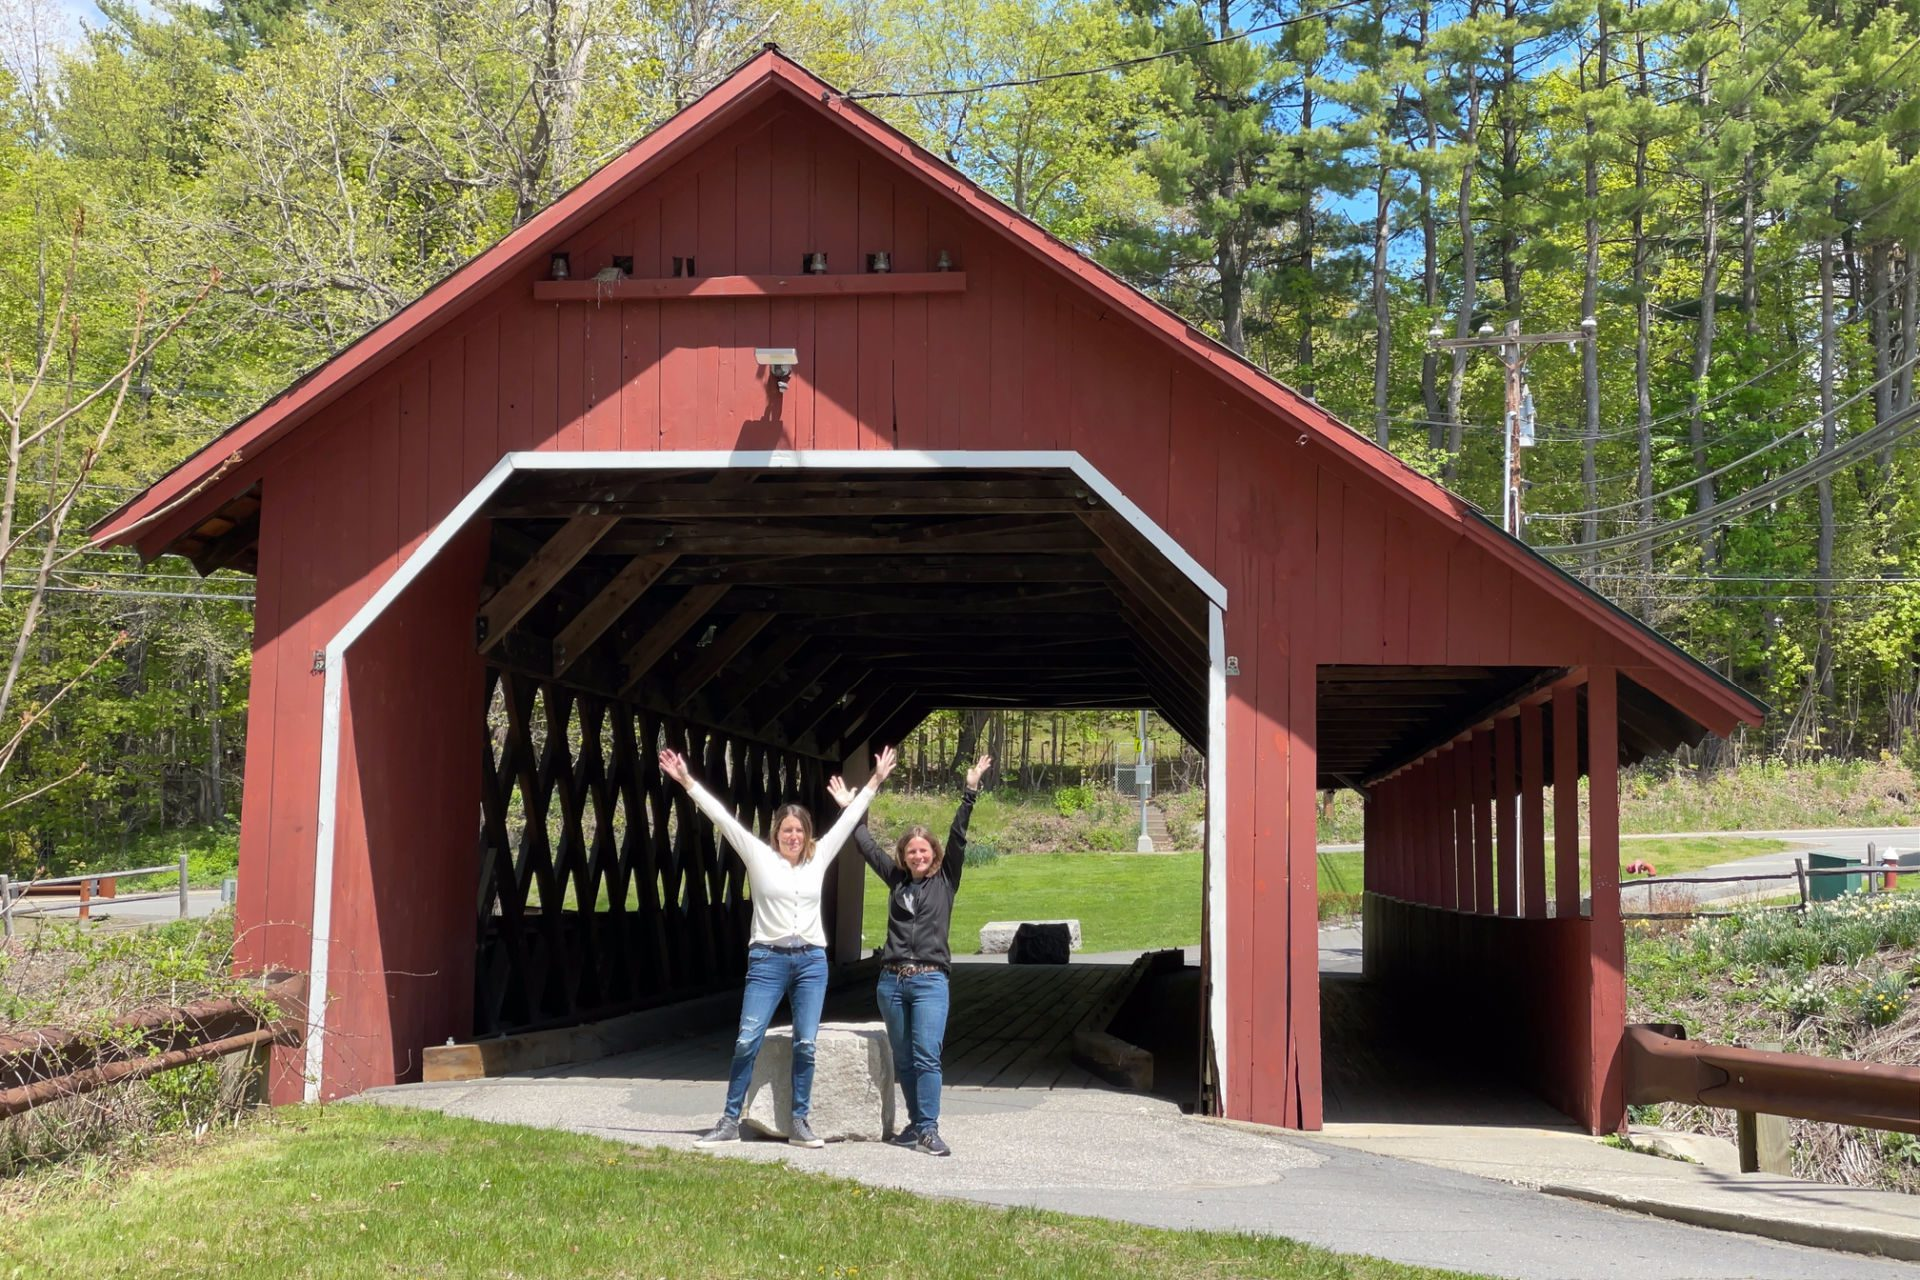 Covered Bridges to Craft Beer: A Vermont Weekend Getaway Guide